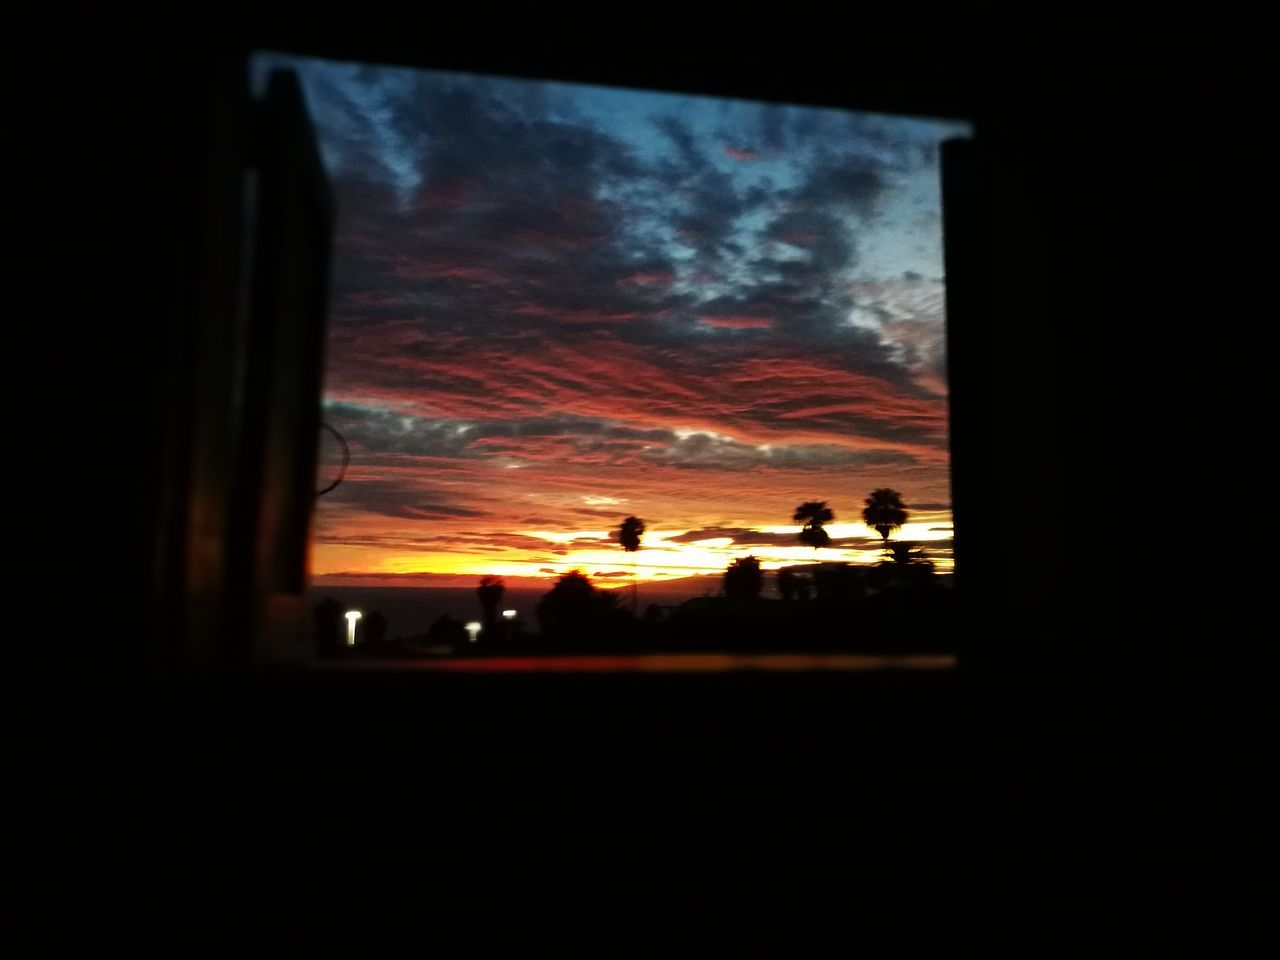 sunset, silhouette, sky, window, indoors, nature, real people, day